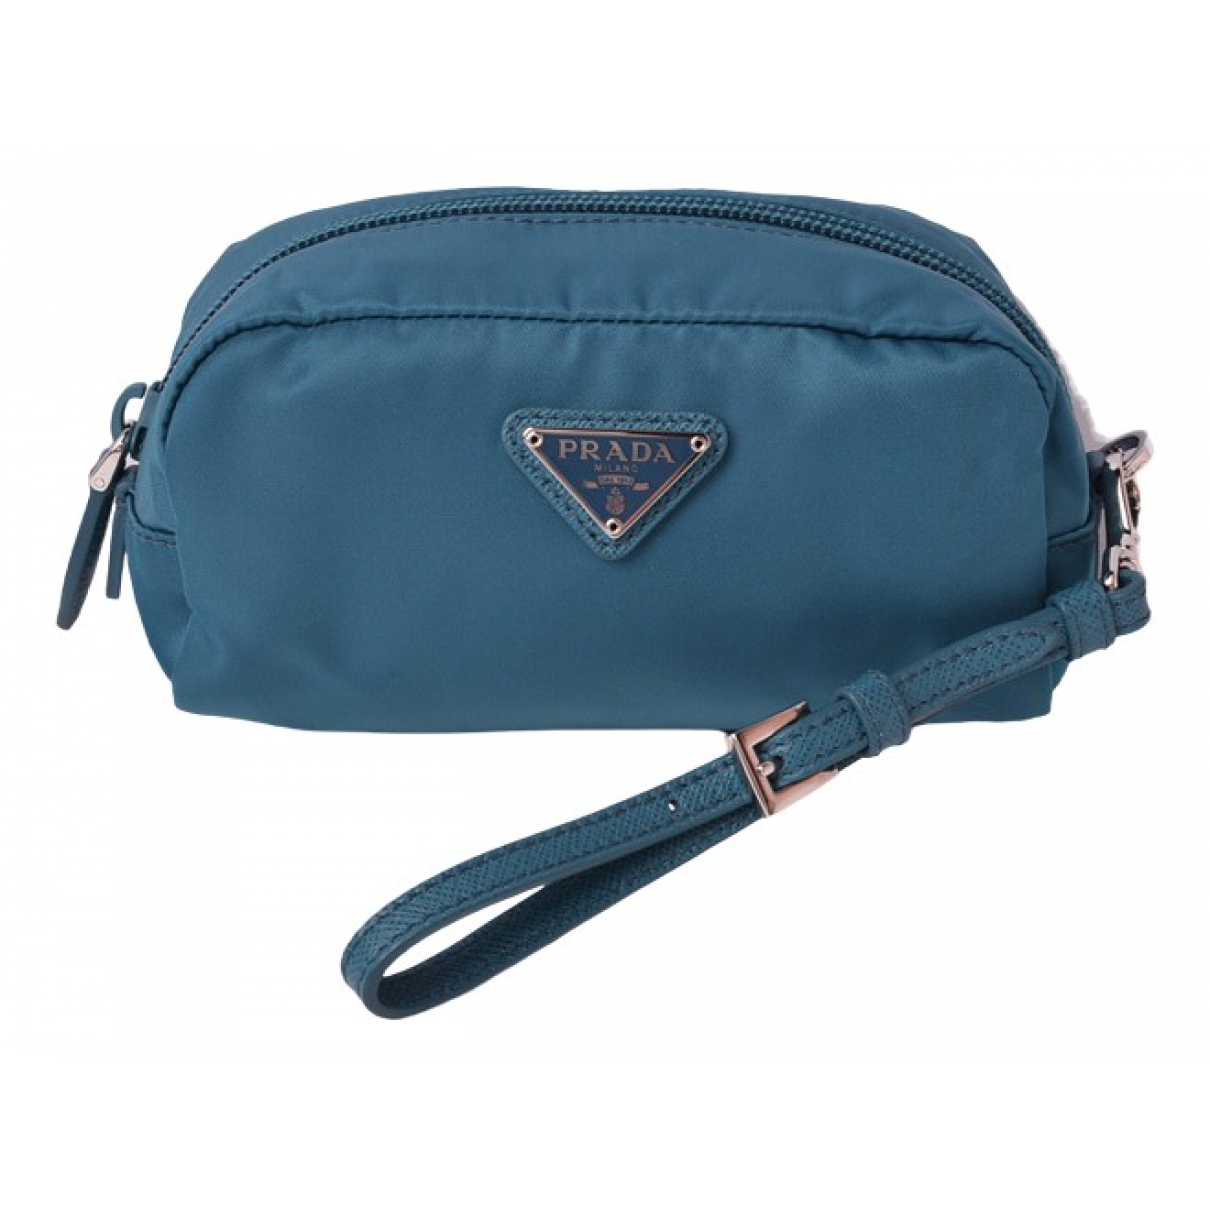 Prada \N Blue Travel bag for Women \N